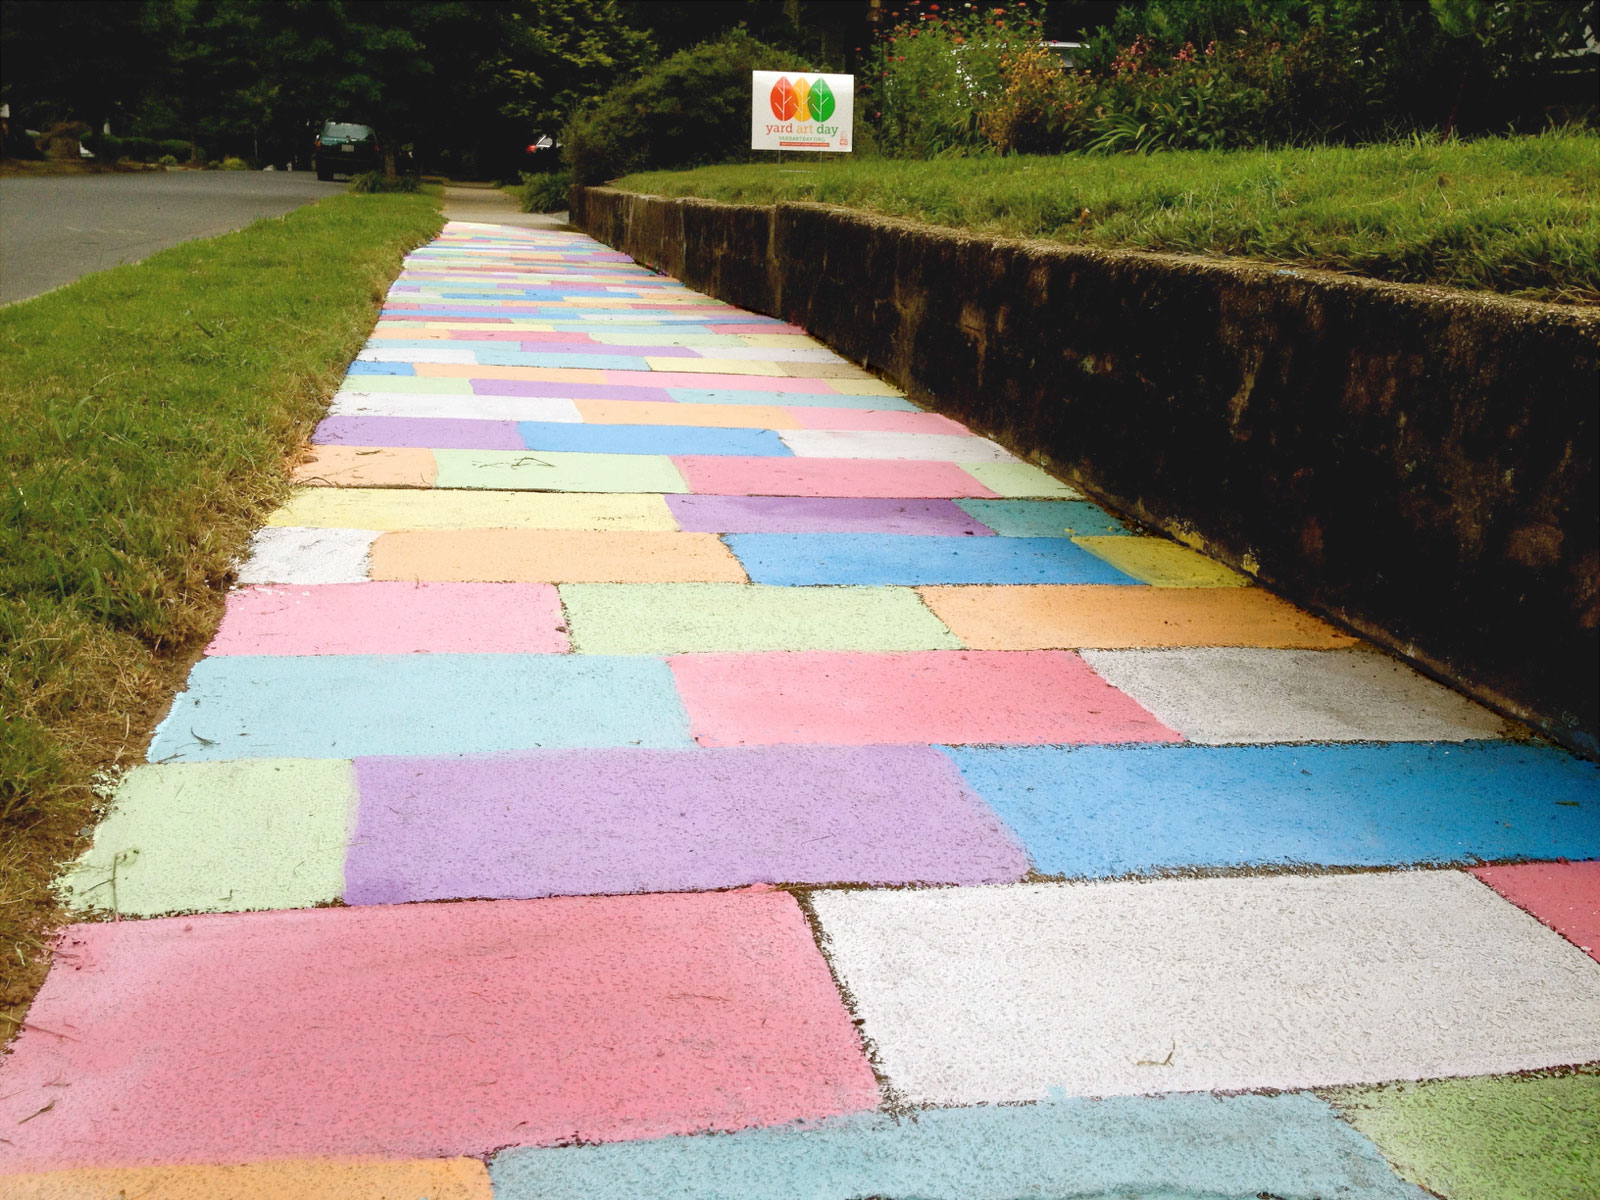 Follow the rainbow brick road.